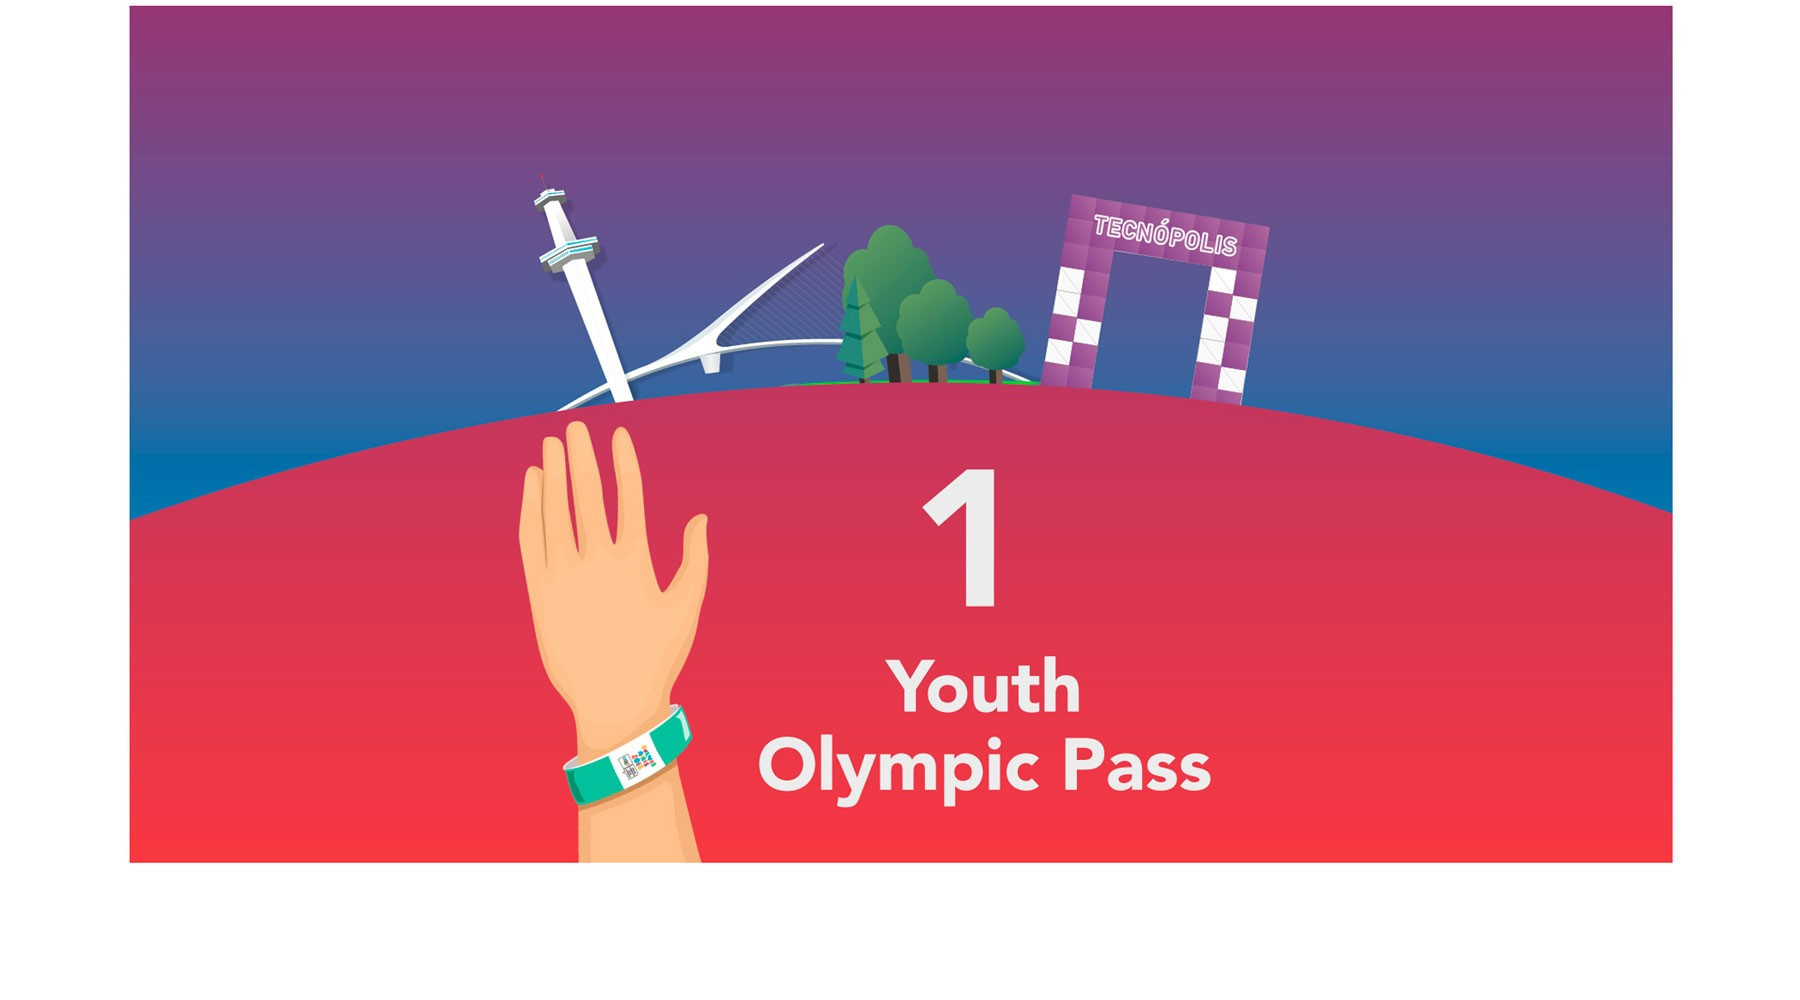 Buenos Aires 2018 set to open registration for Youth Olympic Pass